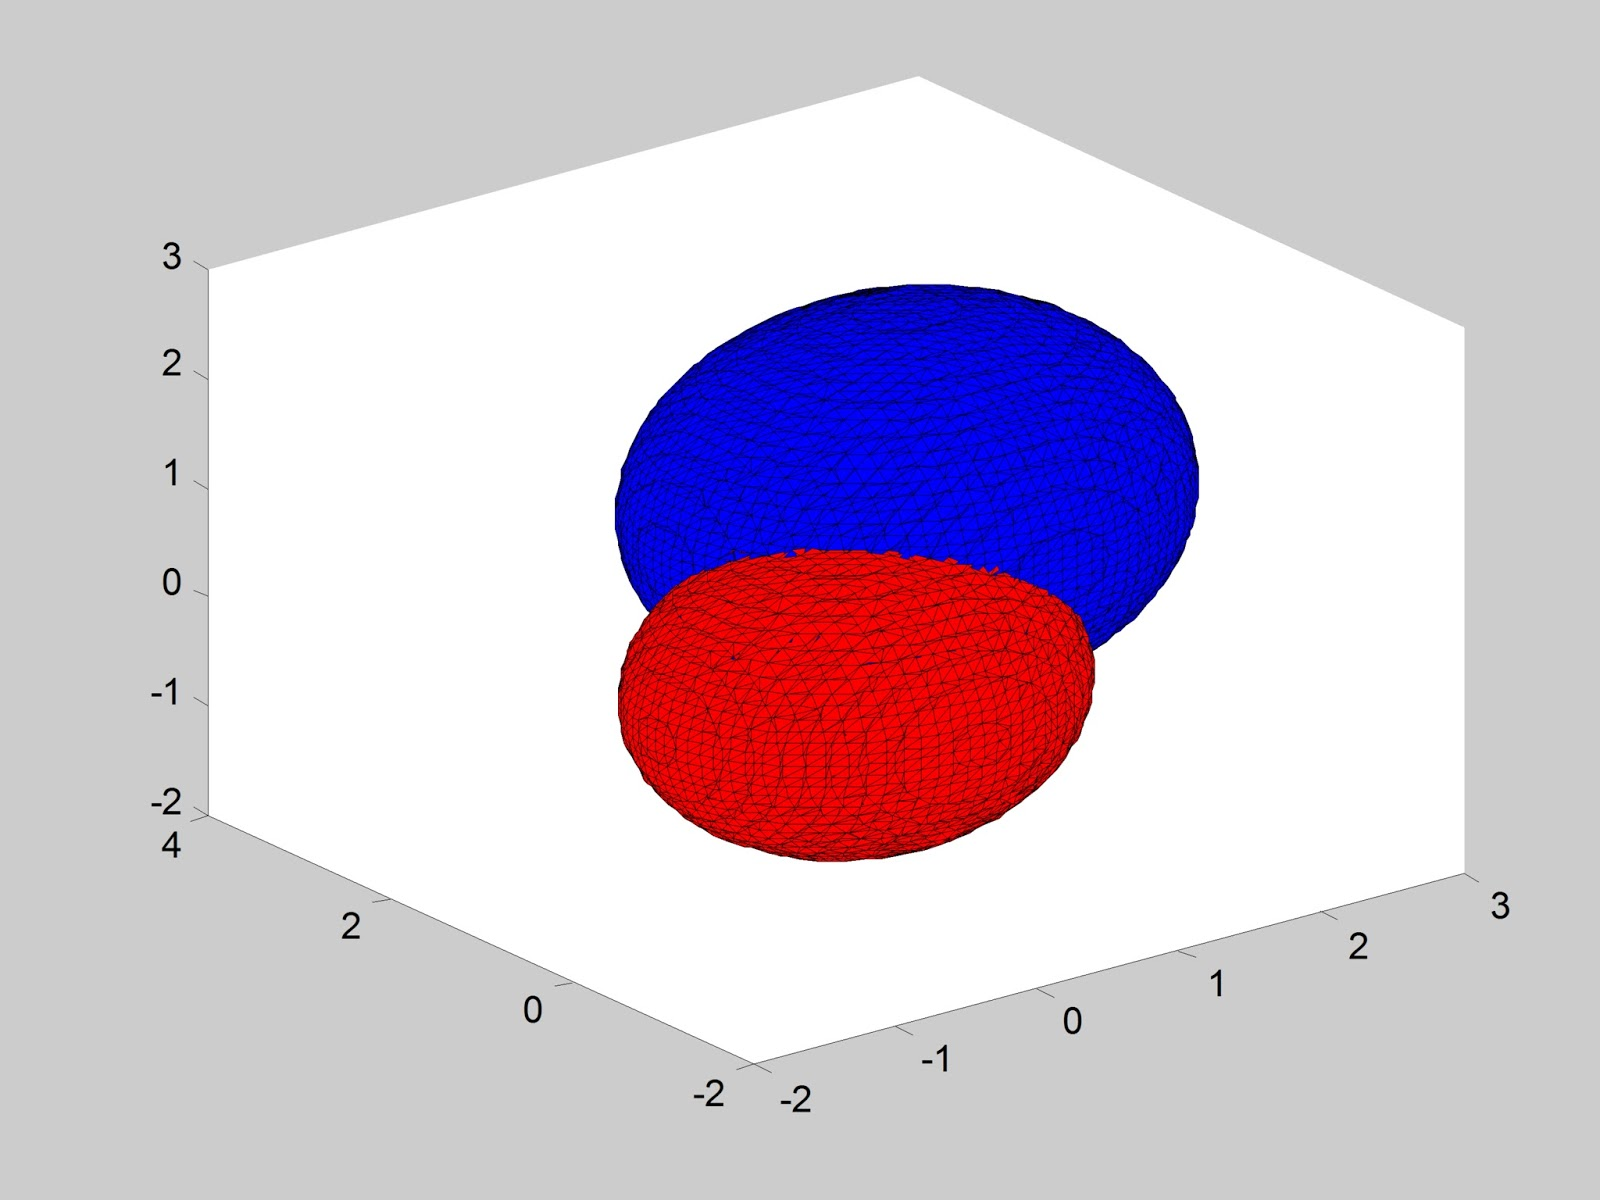 MATLAB     and more    : Matlab: plot 3D object defined by function